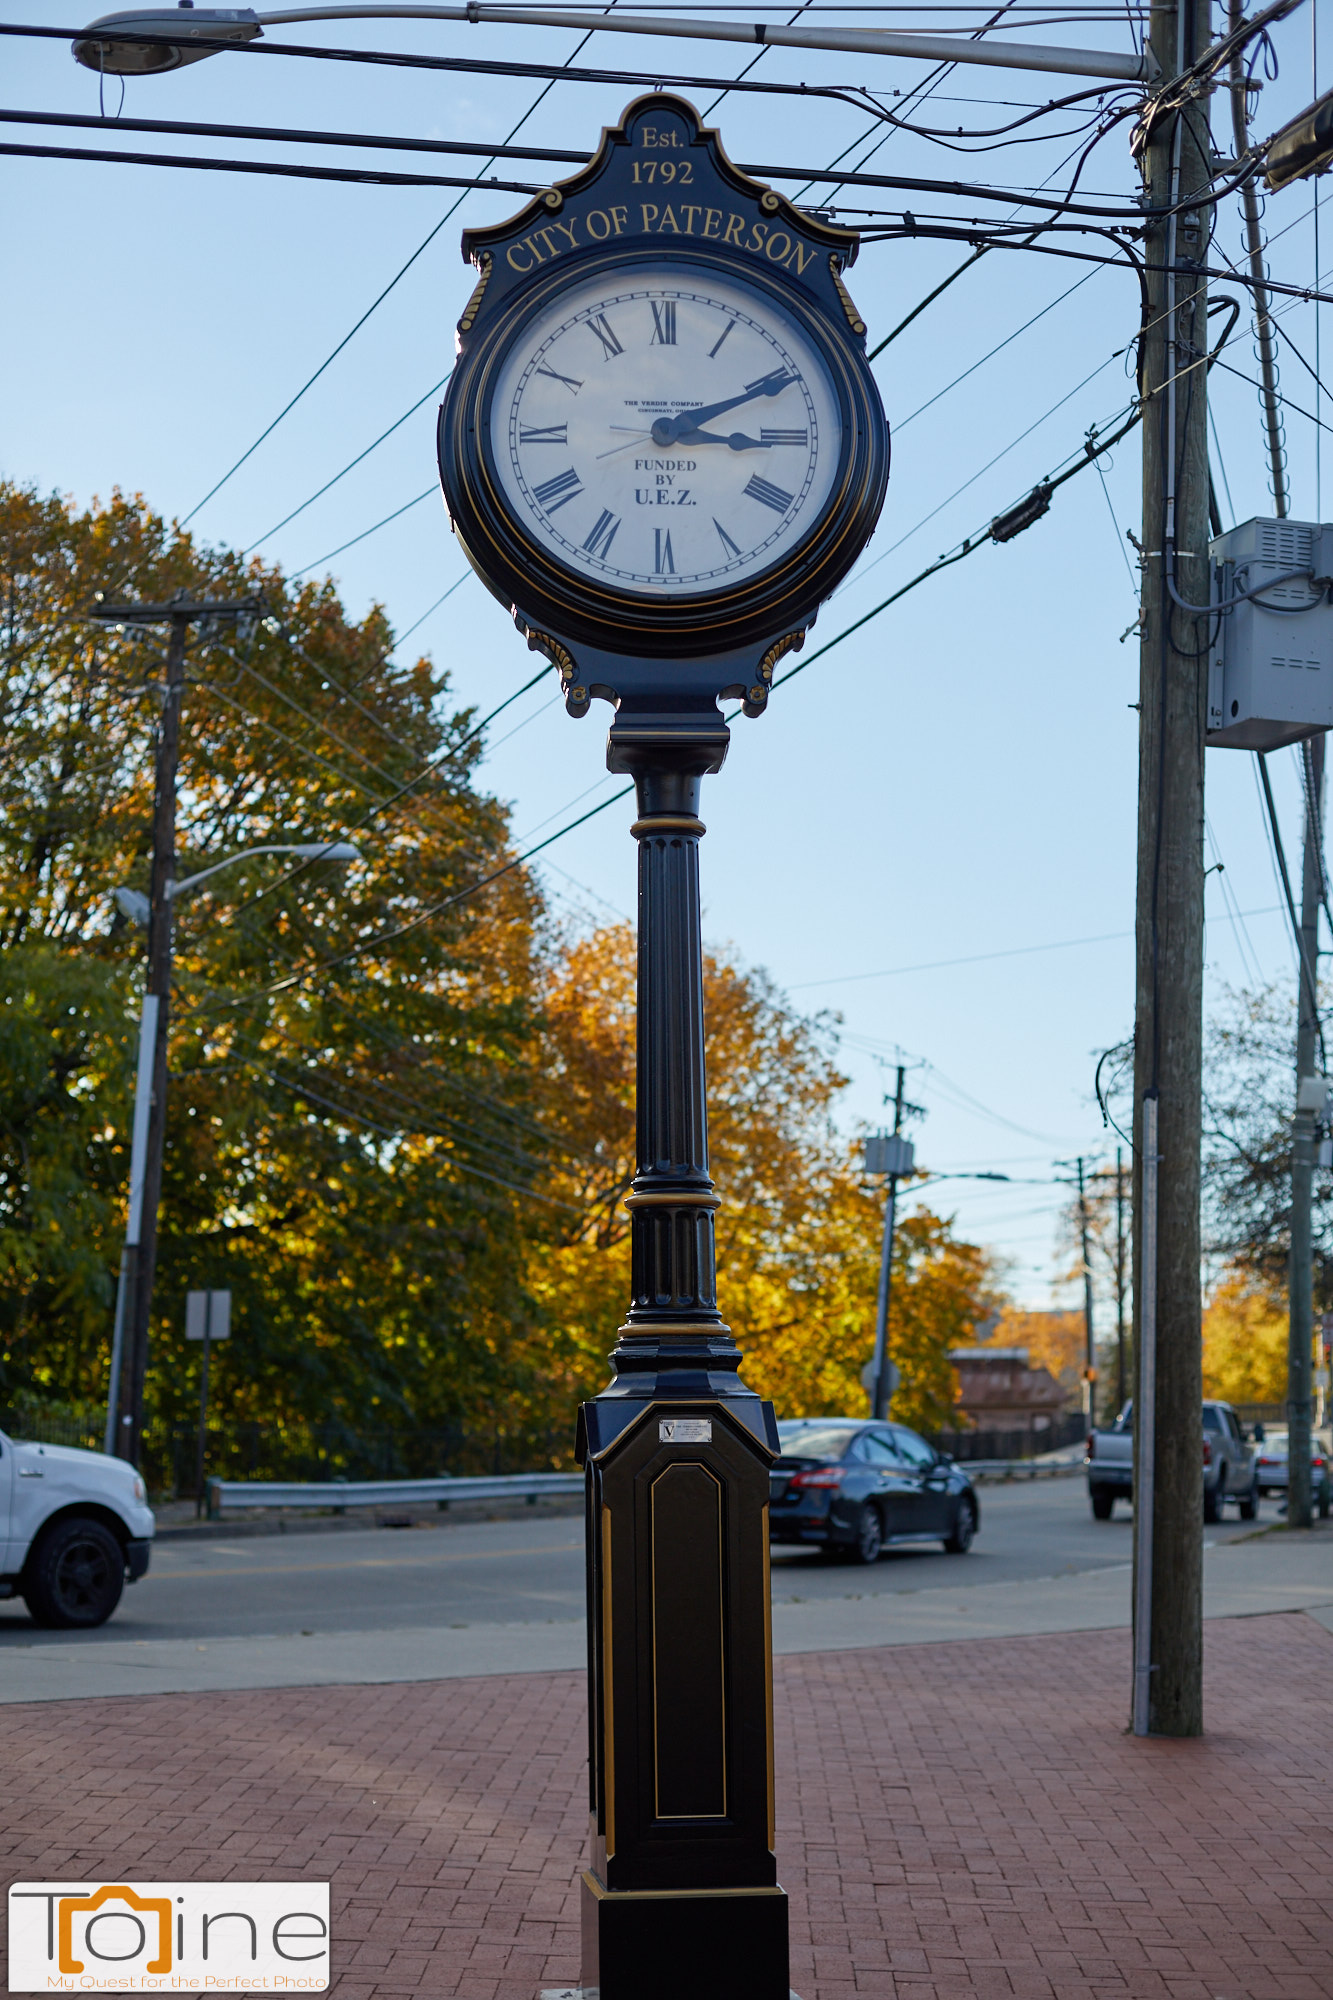 Old fashioned looking clock in historic Paterson.